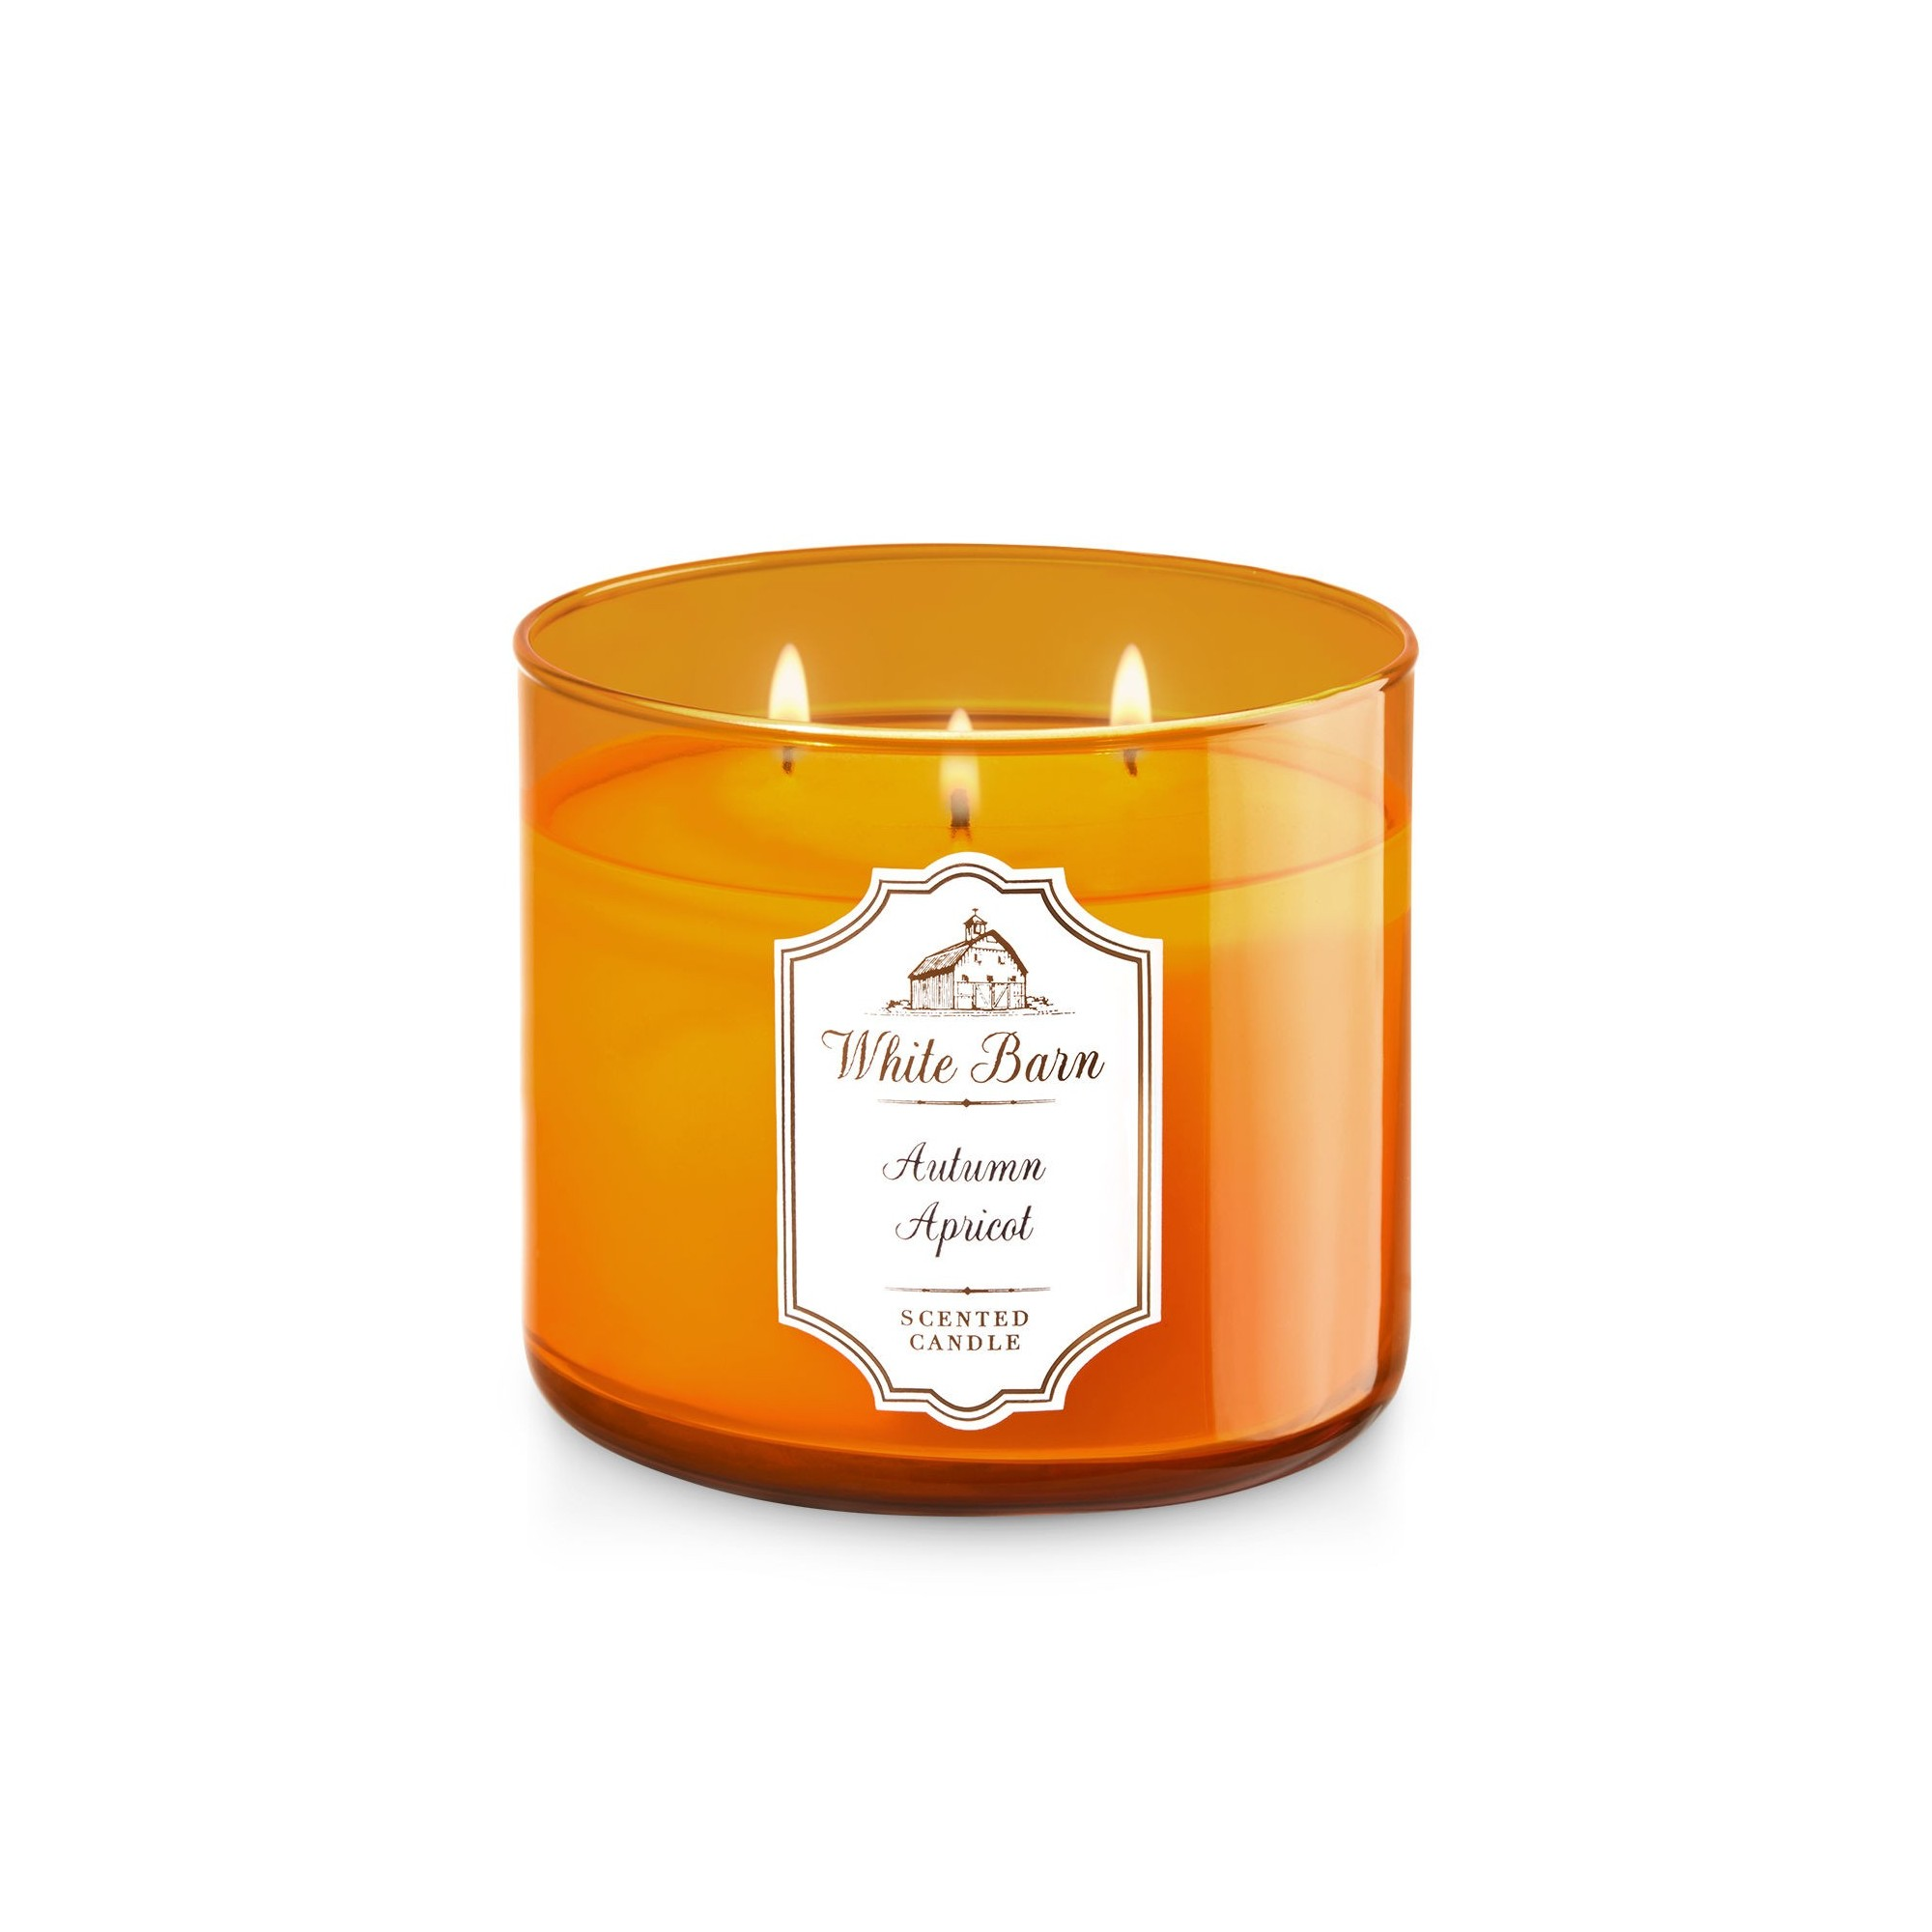 Bath & Body Works White Barn Autumn Apricot 3 Wick Scented Candle